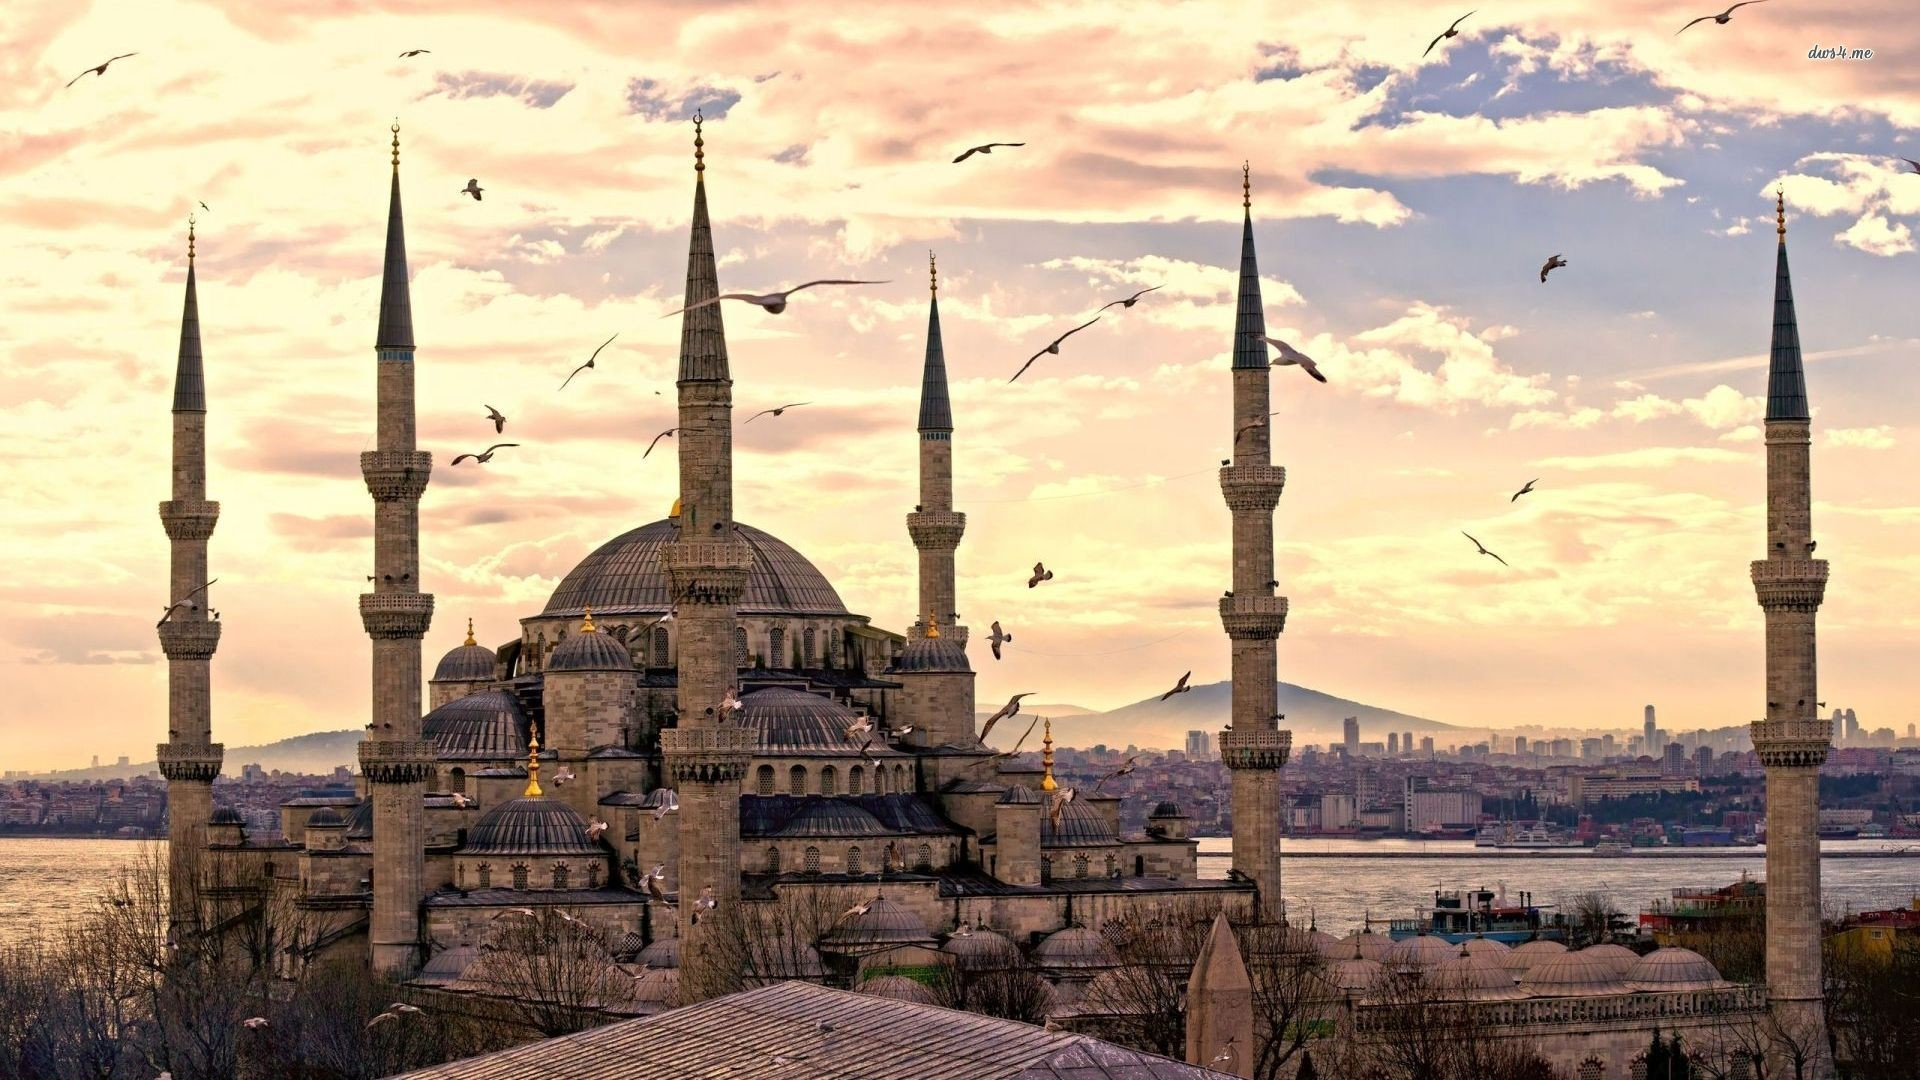 1920x1080 Istanbul Wallpaper Find best latest Istanbul Wallpaper for your PC desktop  background & mobile phones.